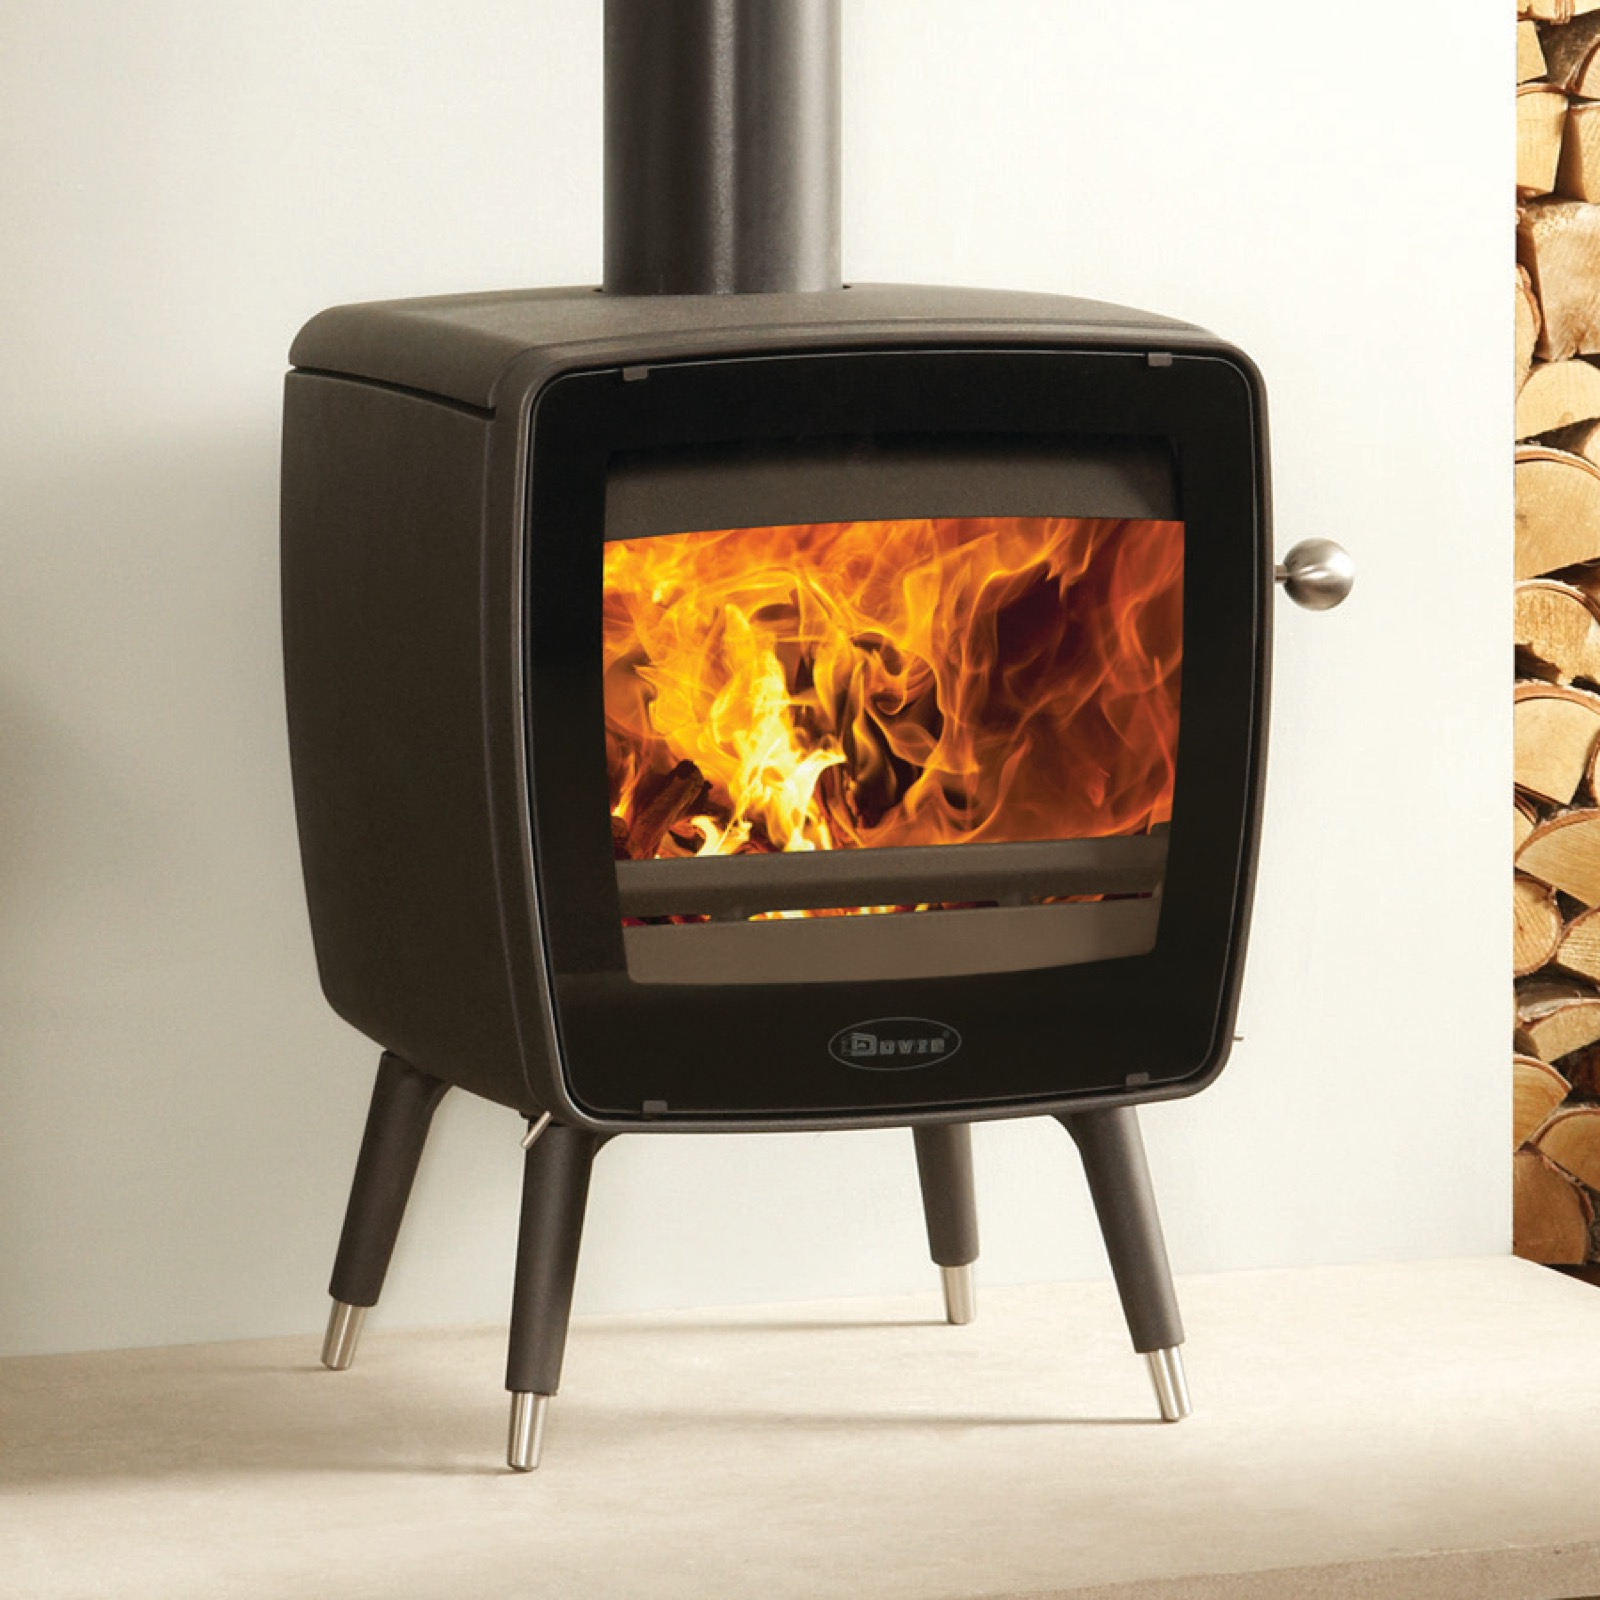 Dovre Vintage 35 Wood Burning Stove With Legs Simply Stoves